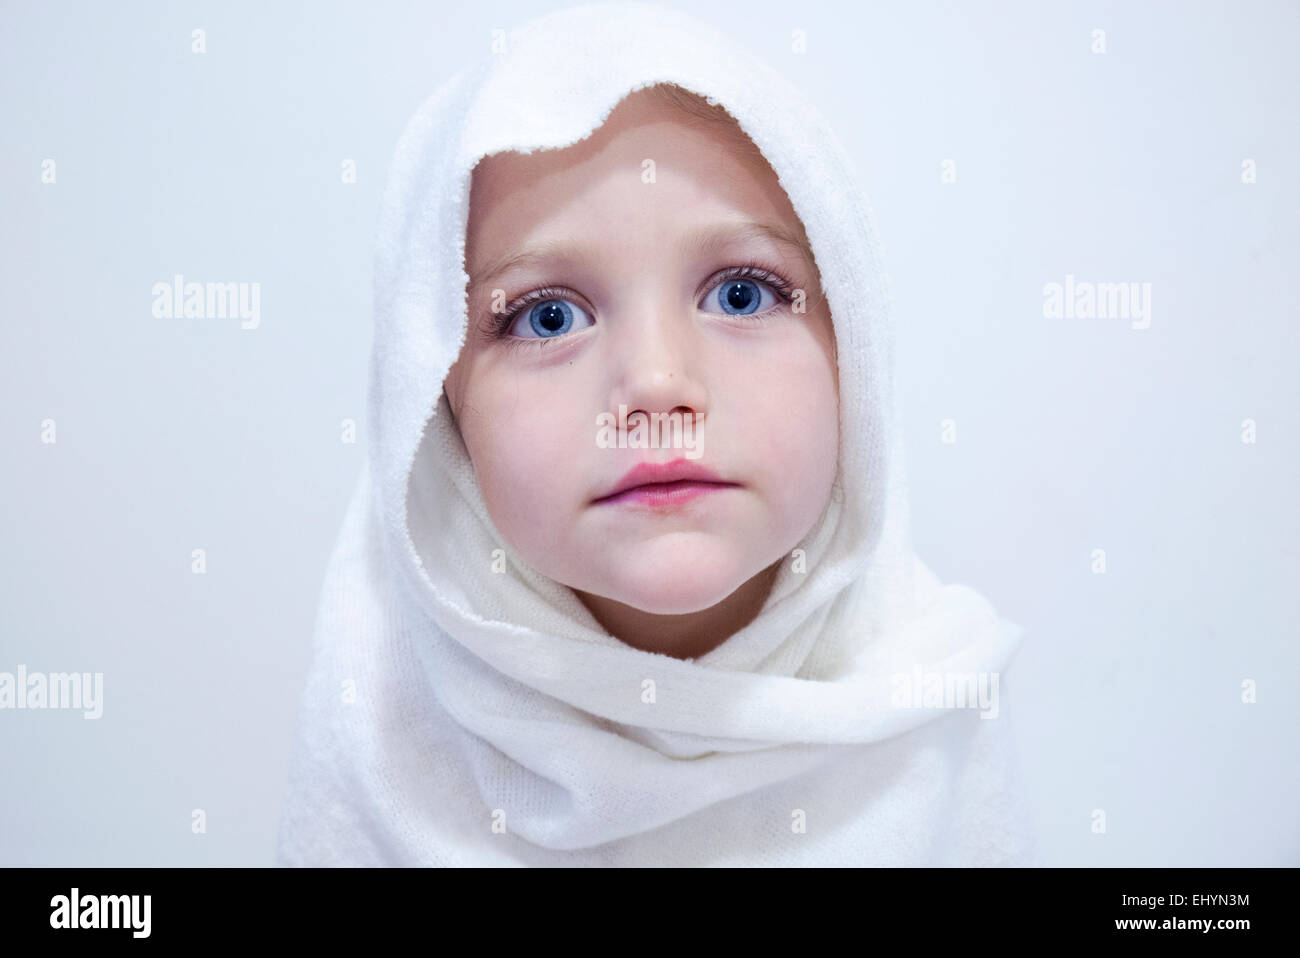 Portrait of a girl wearing a white headscarf - Stock Image